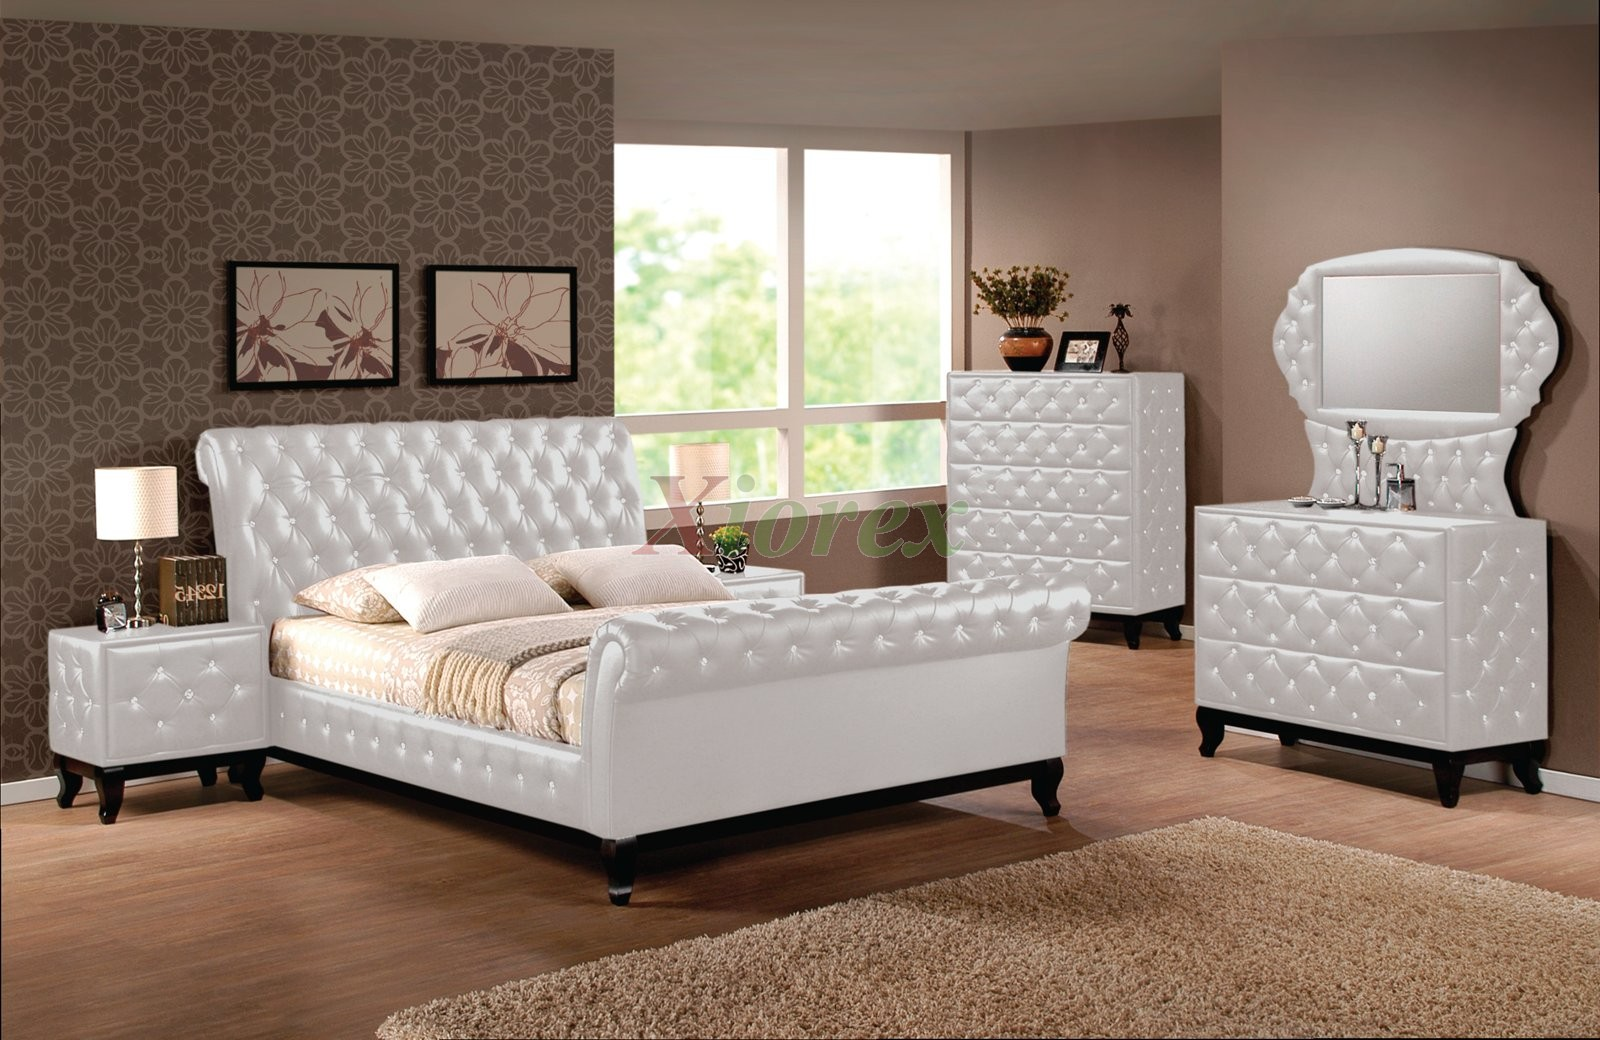 Upholstered sleigh platform bedroom furniture set 151 xiorex for 3 bedroom set